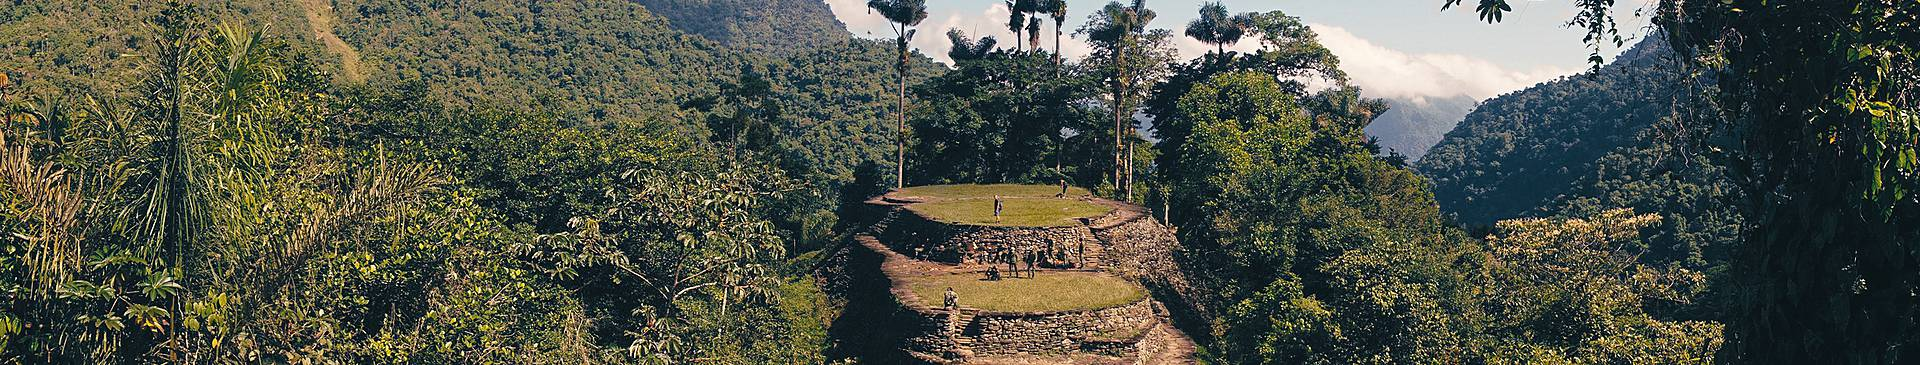 Historical sites in Colombia